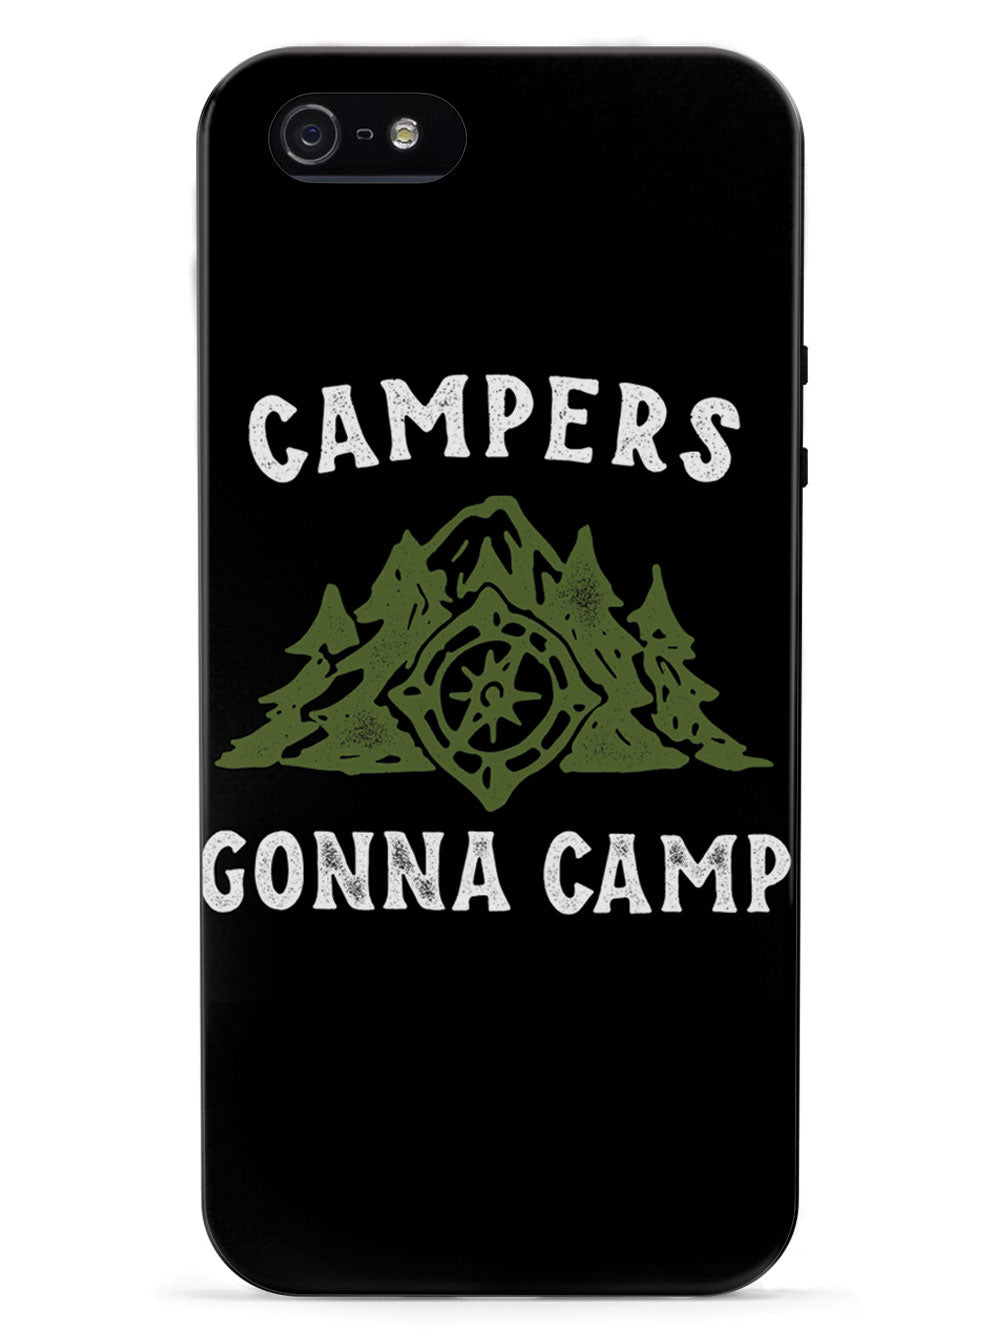 Campers Gonna Camp - Black Case